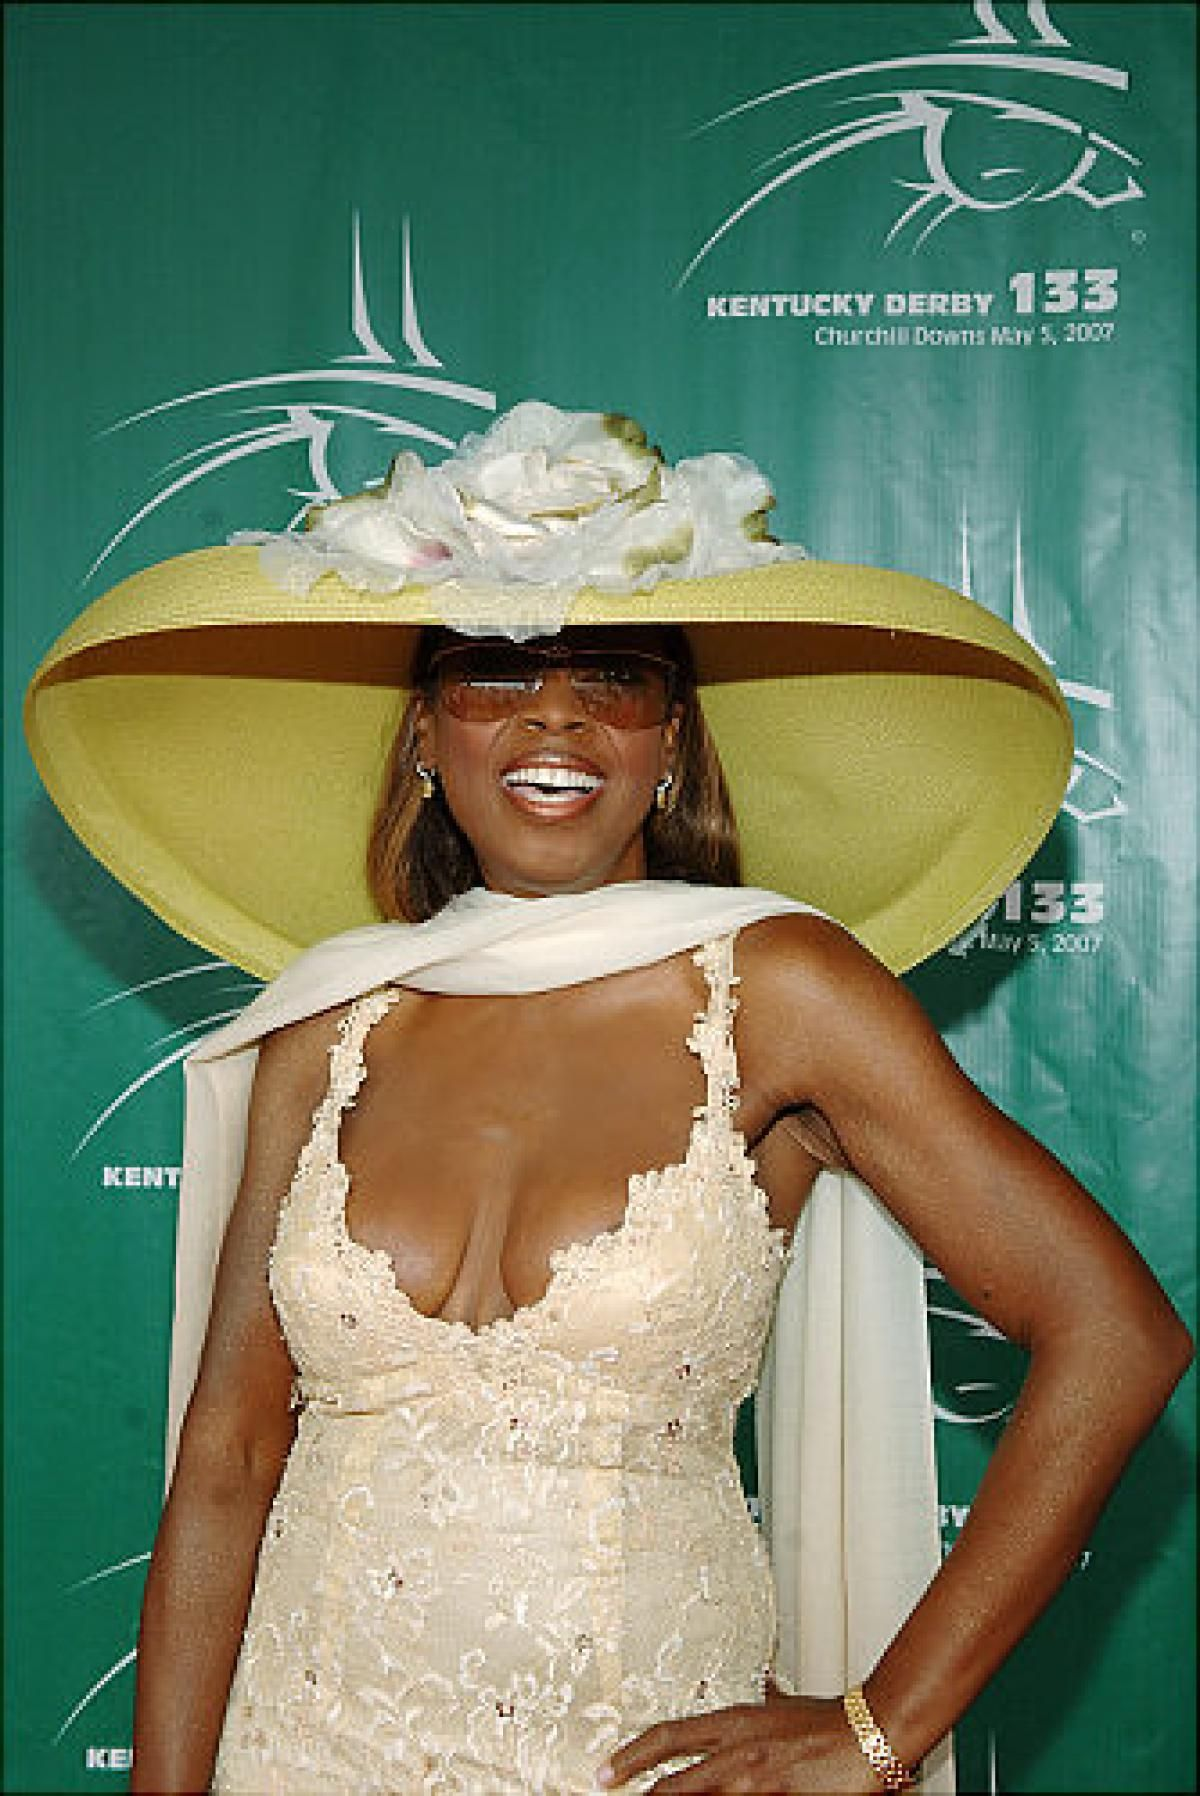 We think that's Star Jones under there, but with a hat that large and her dramatic weight loss, it's really hard to tell.